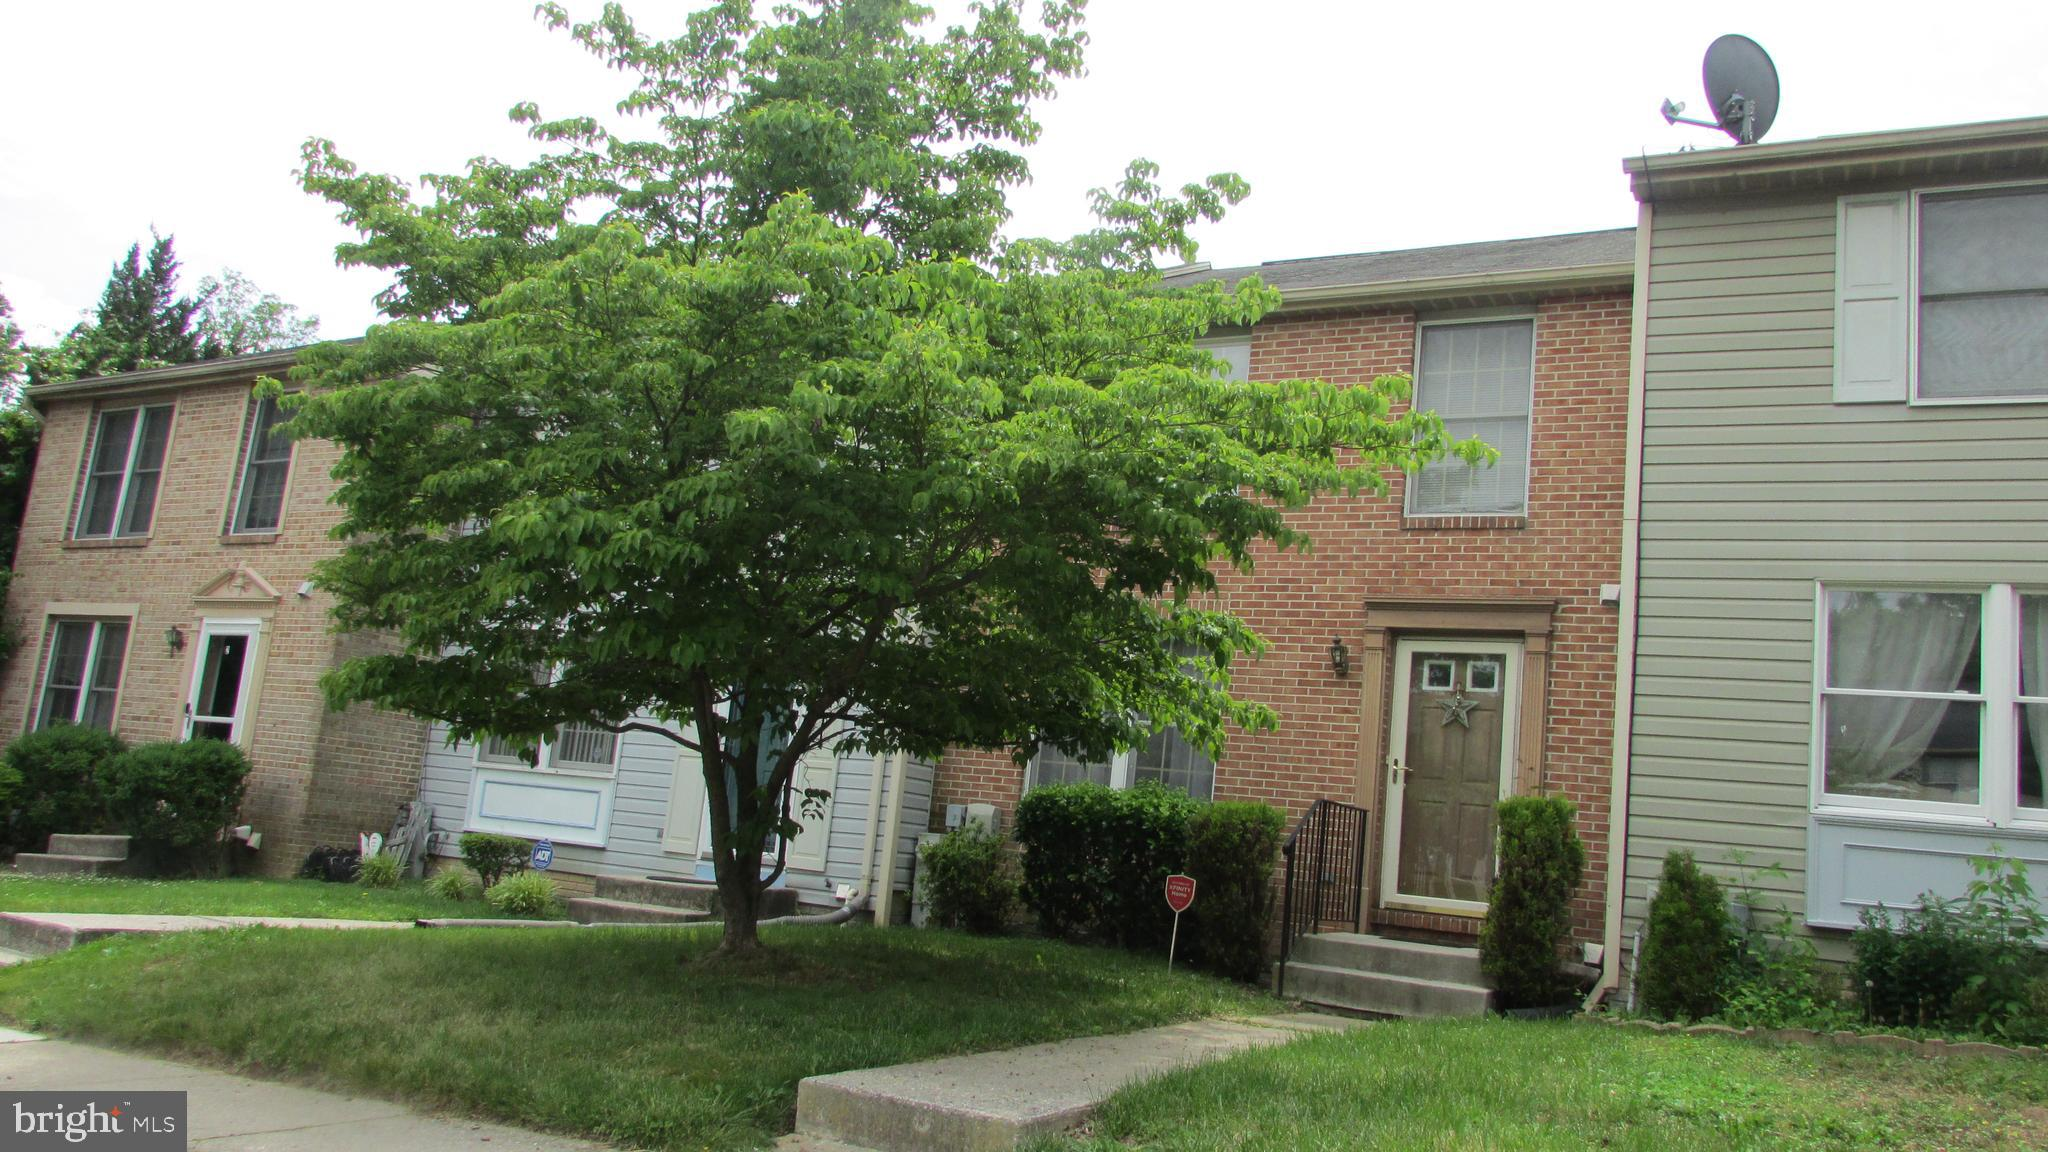 Best deal in ALL of Owings Mills is HERE. This 3 bedroom jewel boast Hardwood floors, Fenced rear, 3 finished levels with plenty of storage space and much more. An abundance of natural light flows through the large windows inside the ample sized bedrooms.  The dining room leads to a huge deck through the patio doors. Master bedroom has a walk in closet and a seating area. This one is priced to move and it will. Do not wait to view this property. It needs a little TLC but is more than worth the time and the effort.